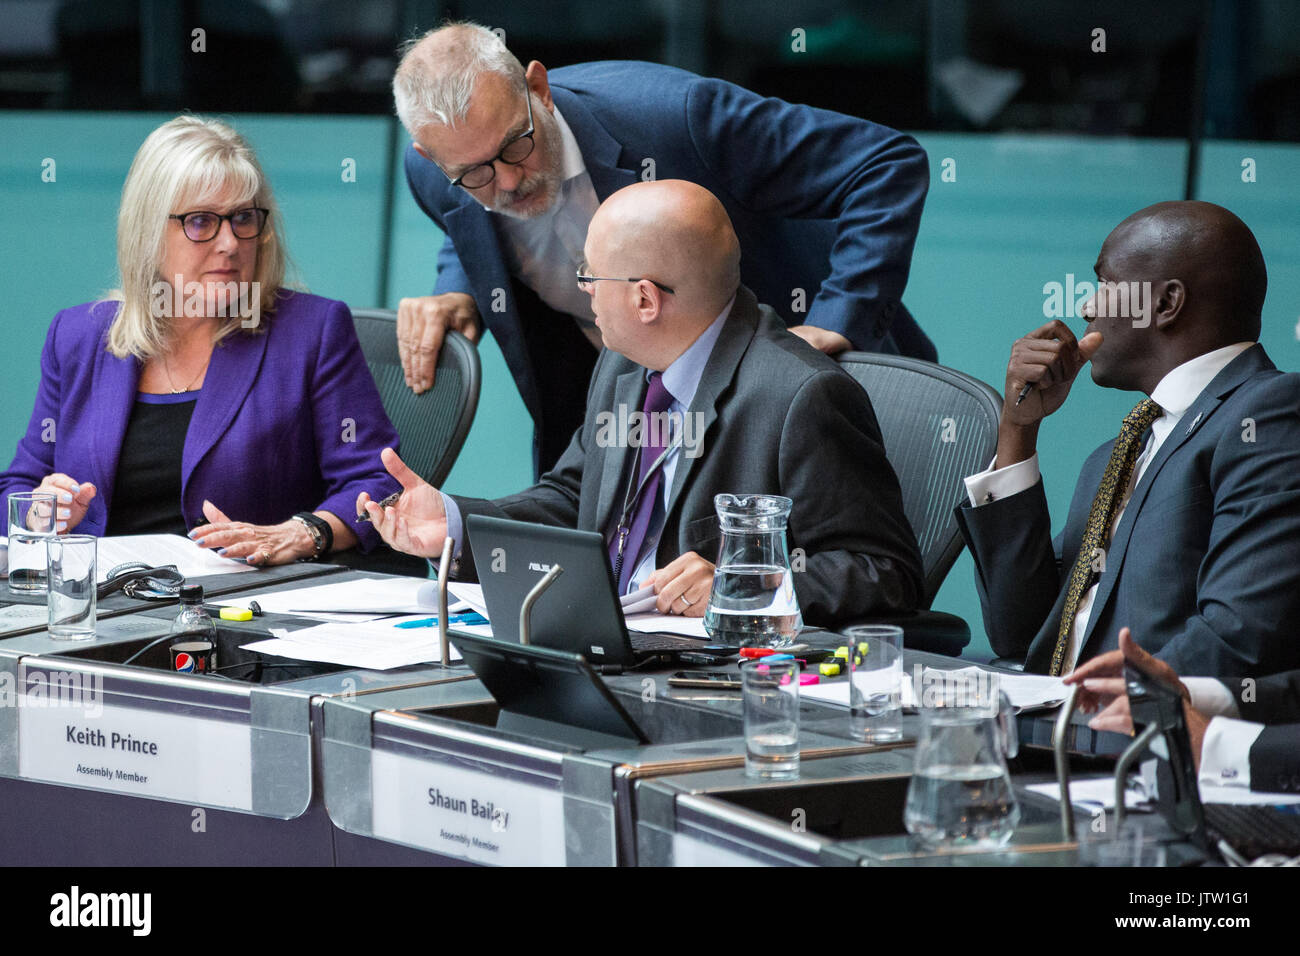 London, UK. 10th August, 2017. London Assembly Members Andrew Boff and Keith Prince converse during Mayor's Question Time at City Hall. Among topics discussed were: acid attacks, social housing, expenditure on fire and police services, 4G coverage on underground trains and noise from overnight underground trains. Credit: Mark Kerrison/Alamy Live News - Stock Image